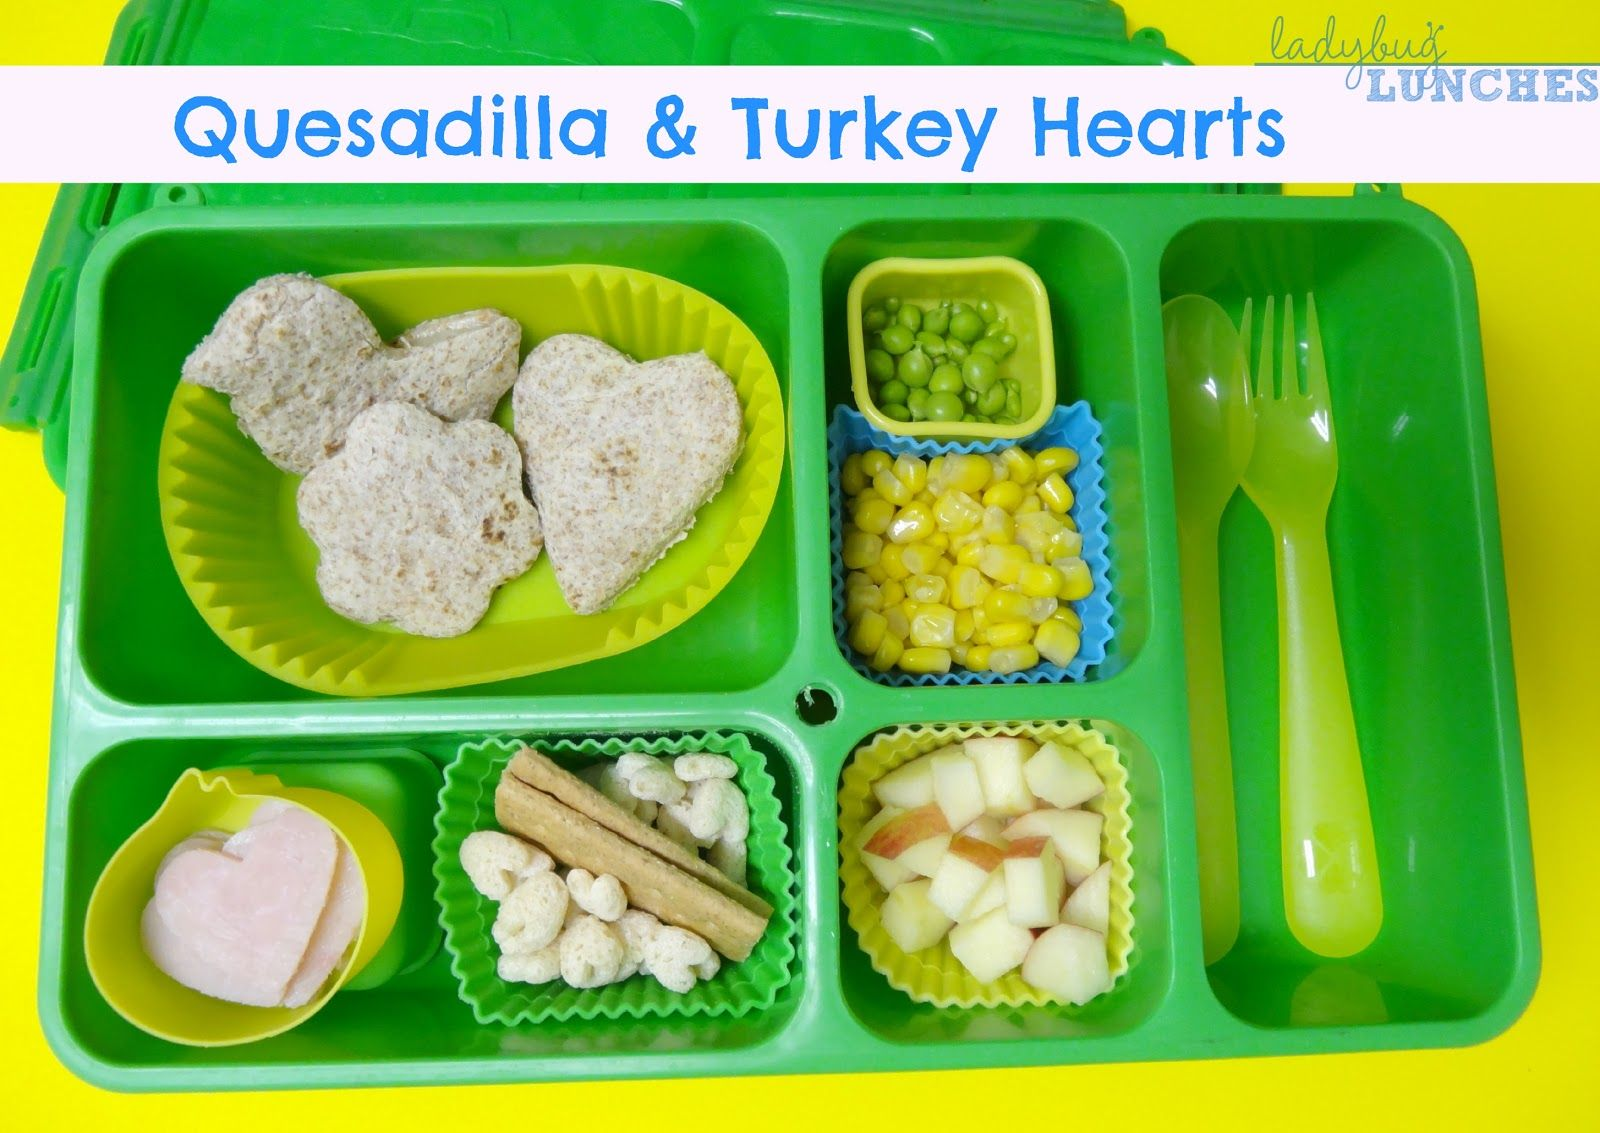 Ladybug Lunches, Quesadilla & Turkey Hearts, Go Green Lunch Box, Fun and Creative Lunch